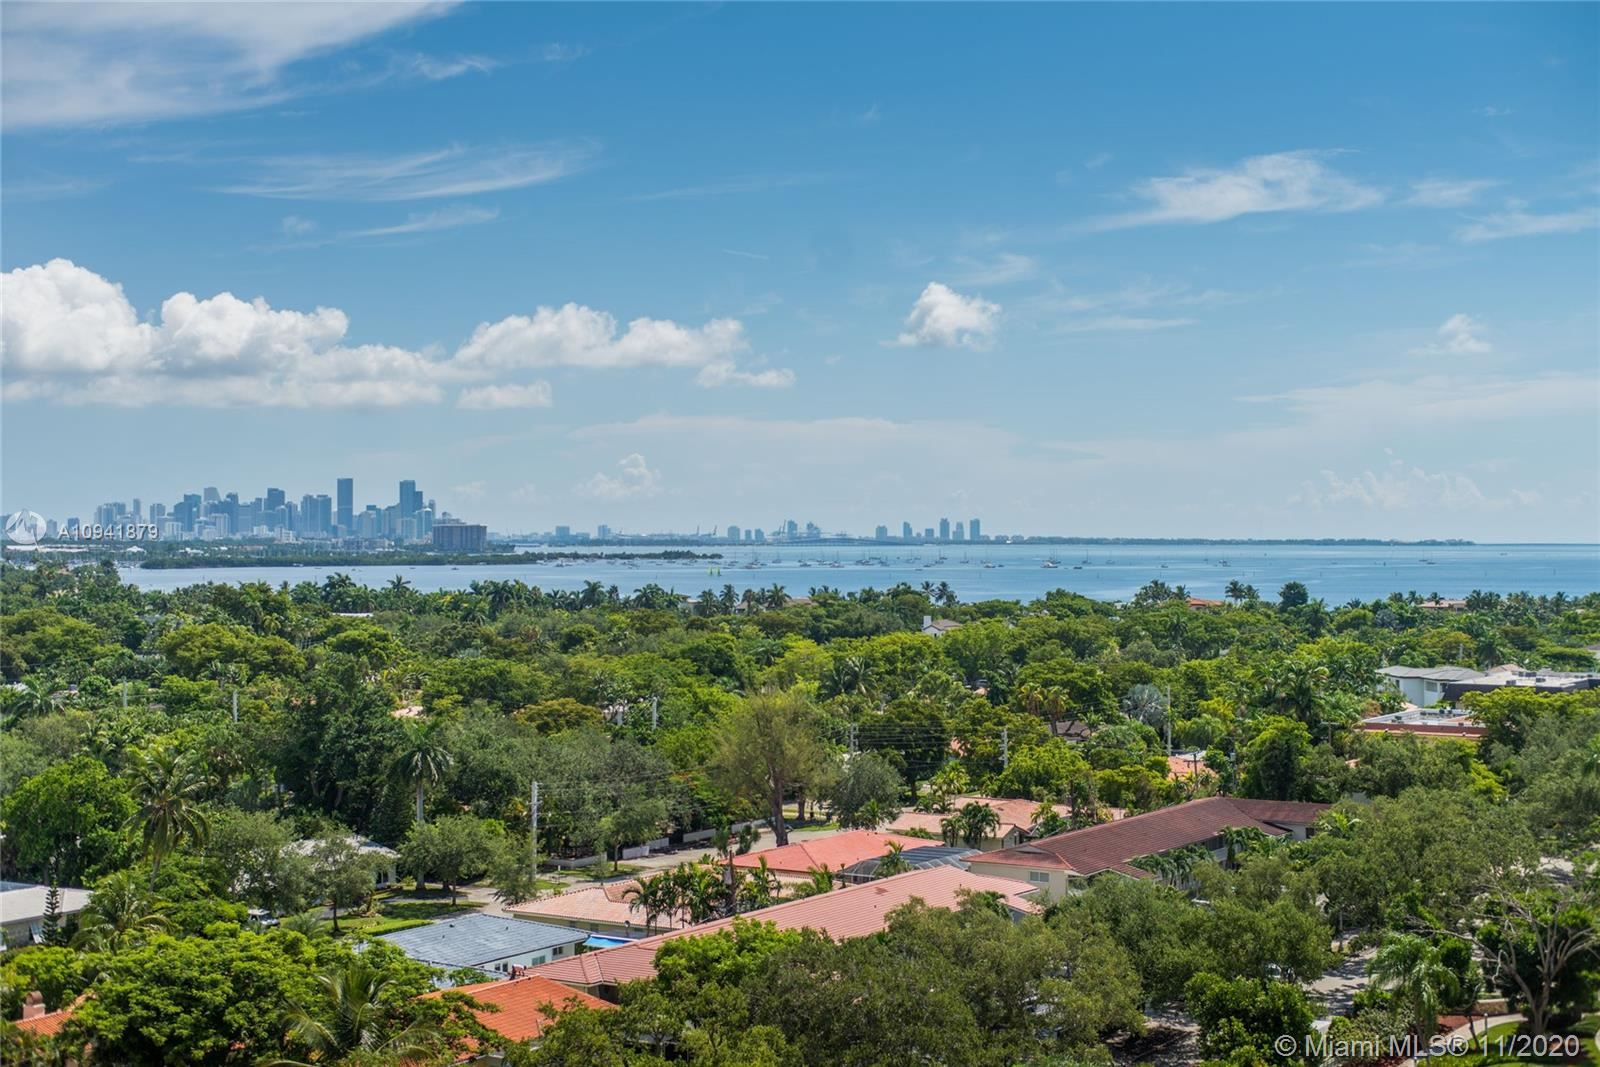 90 Edgewater Dr #1208, Coral Gables, FL 33133 - #: A10941879